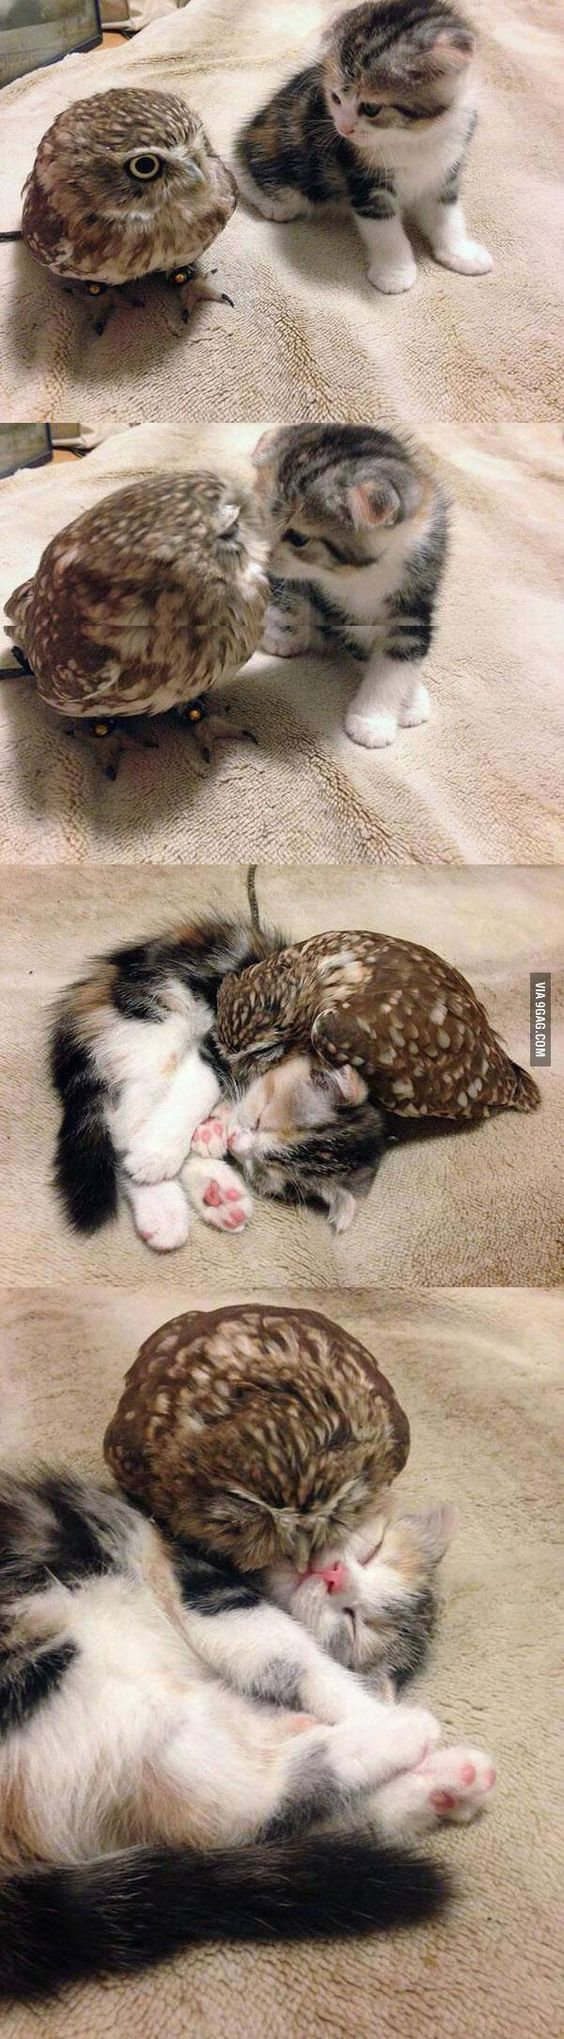 Tiny owl and tiny kitten Animals Pinterest